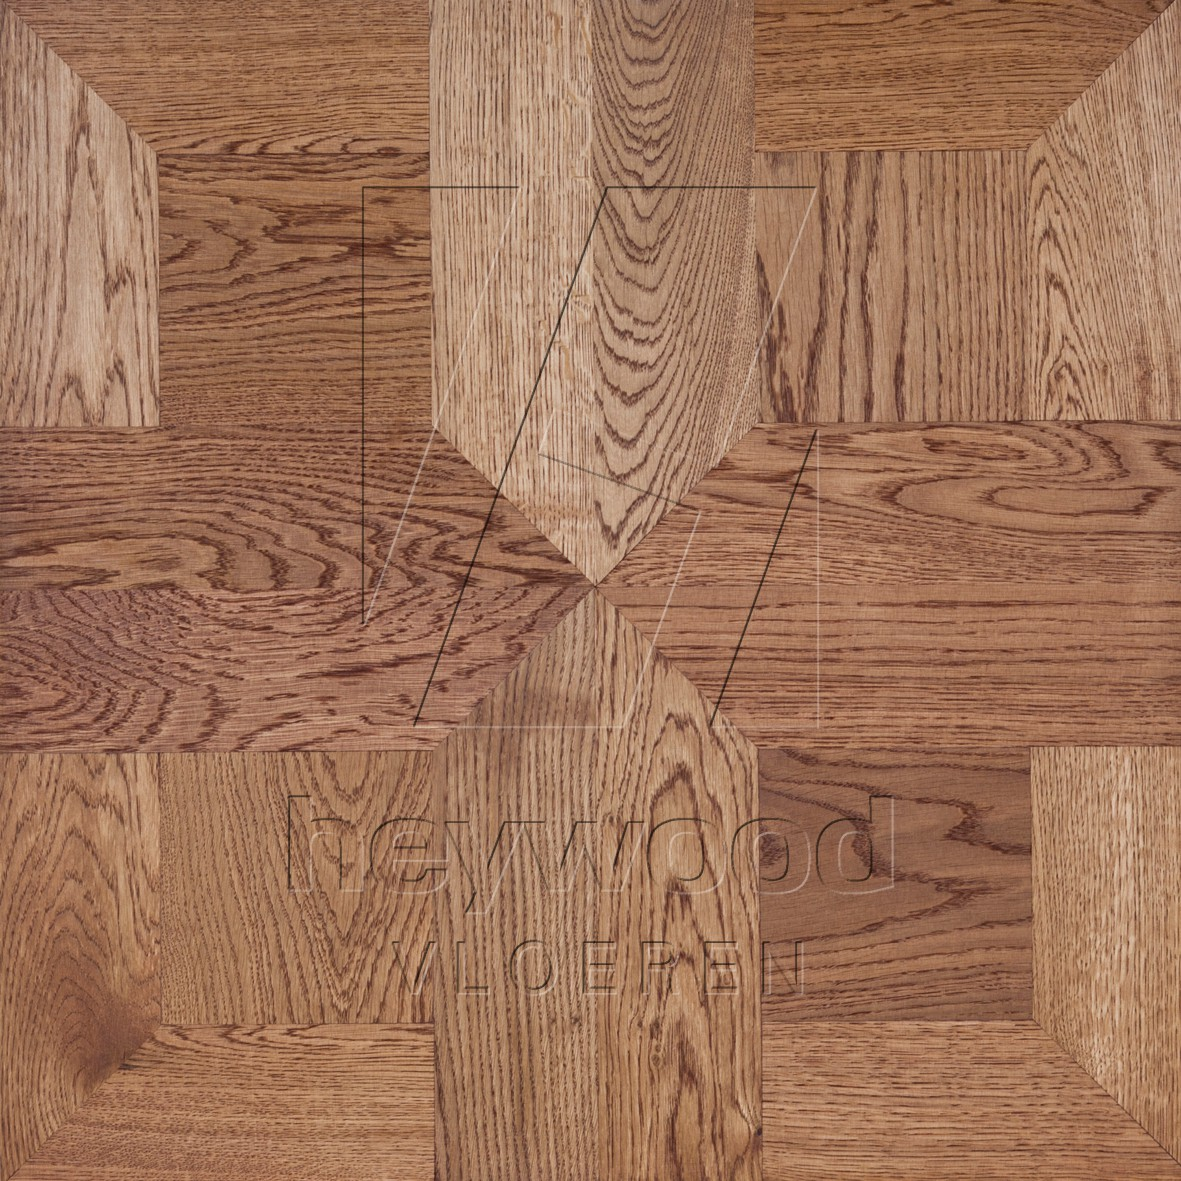 Empire Panel in Floor & Wall Panels of Pattern & Panel Floors